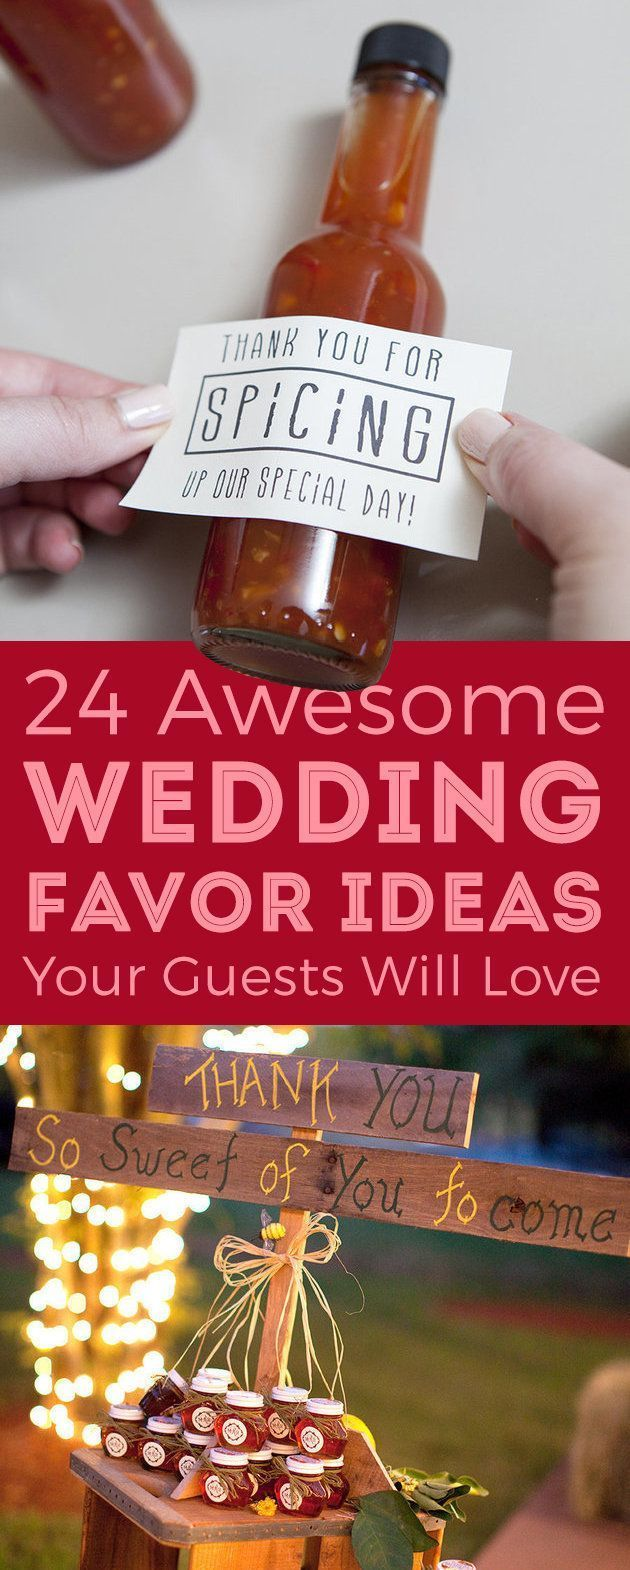 24 Marriage ceremony Favor Concepts That Do not Suck